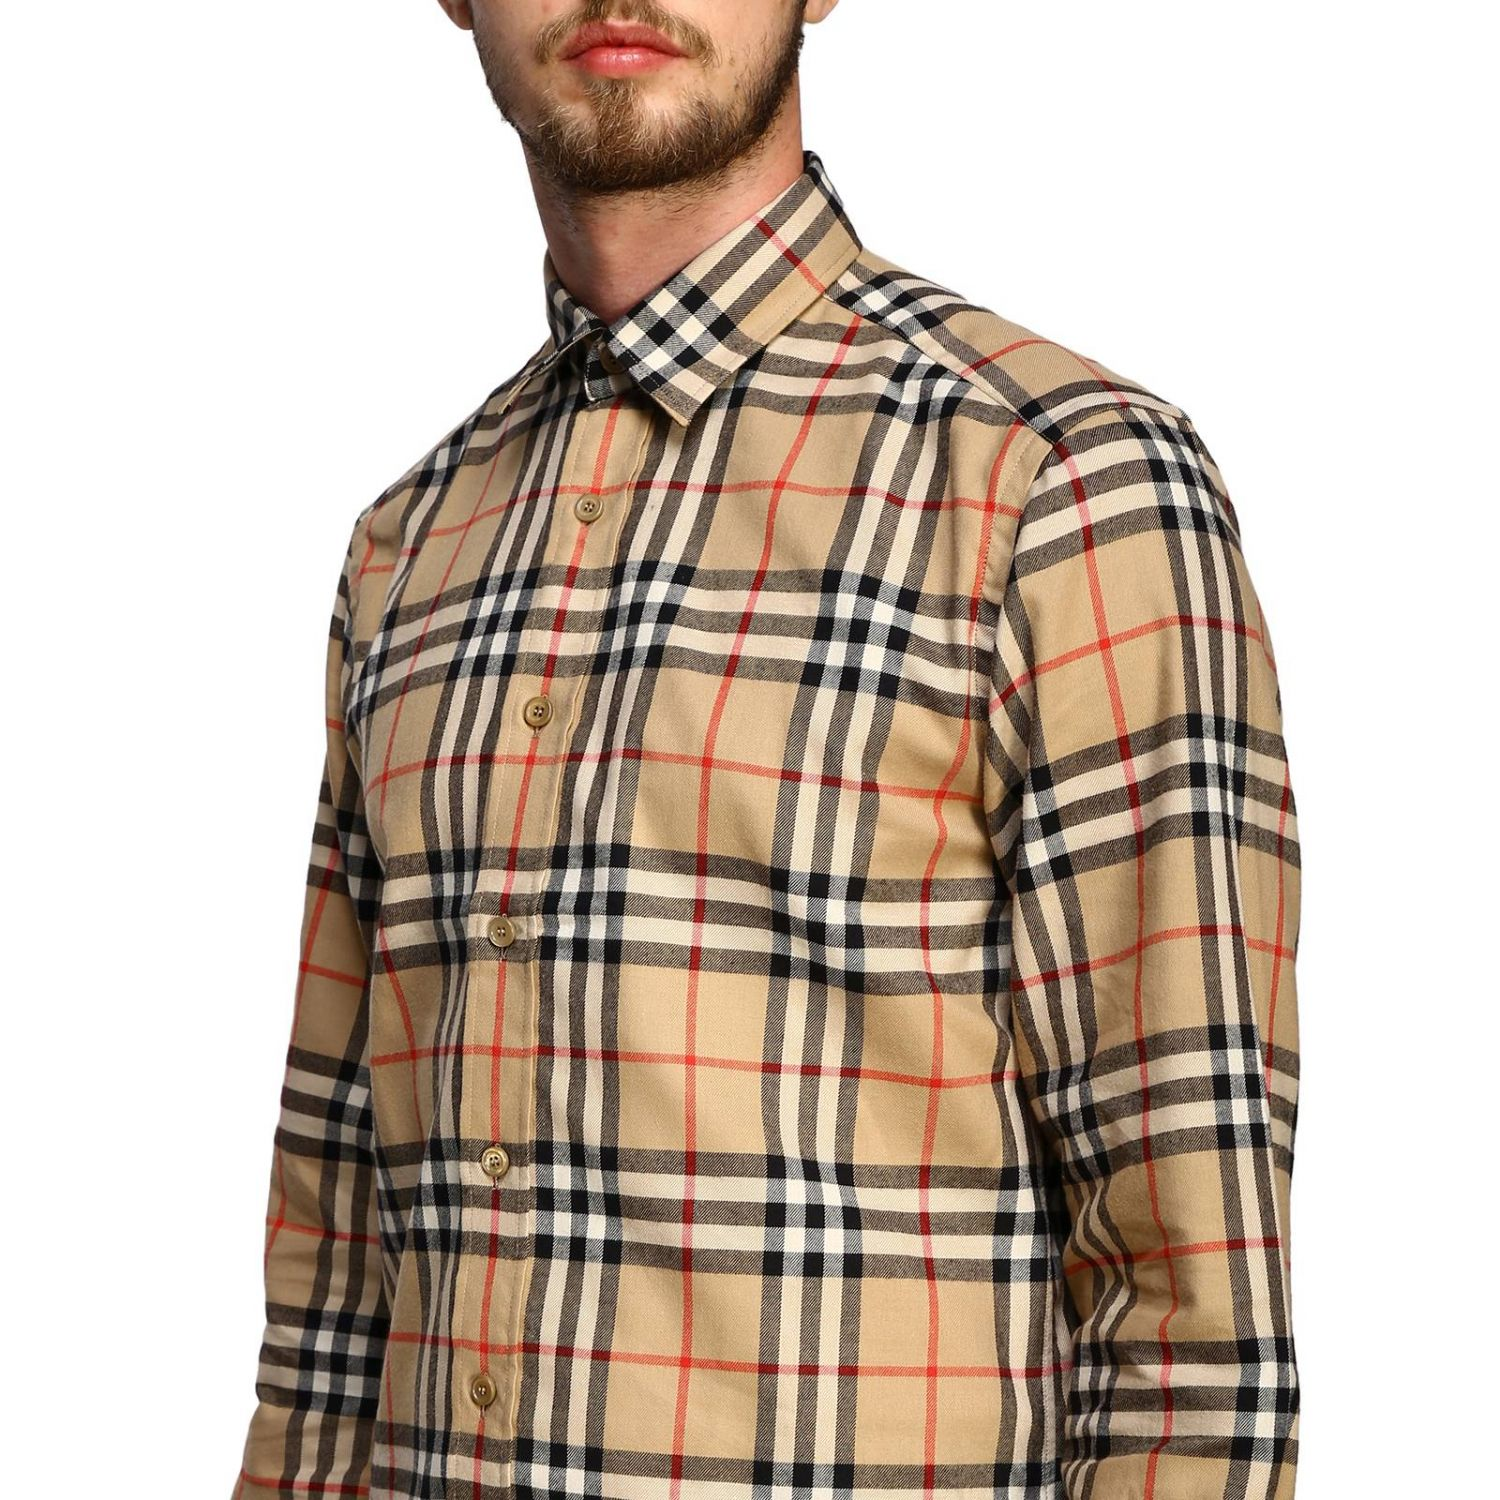 Chemise chambers Burberry motif check beige 5